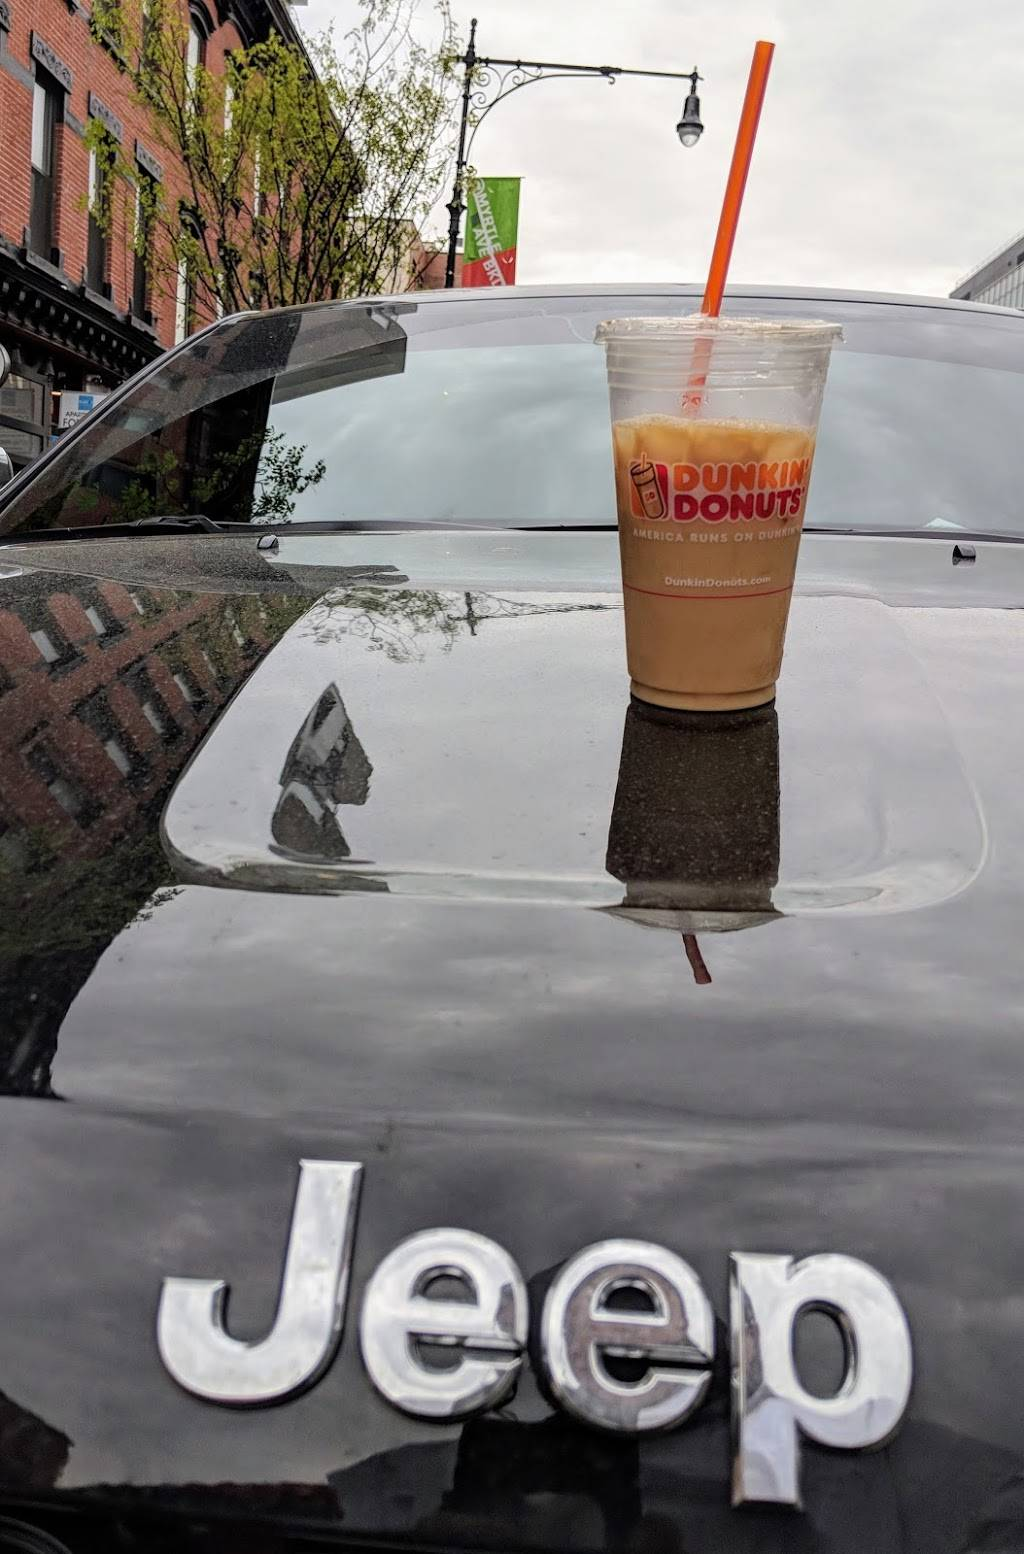 Dunkin Donuts | cafe | 513 Myrtle Ave, Brooklyn, NY 11205, USA | 7182300099 OR +1 718-230-0099